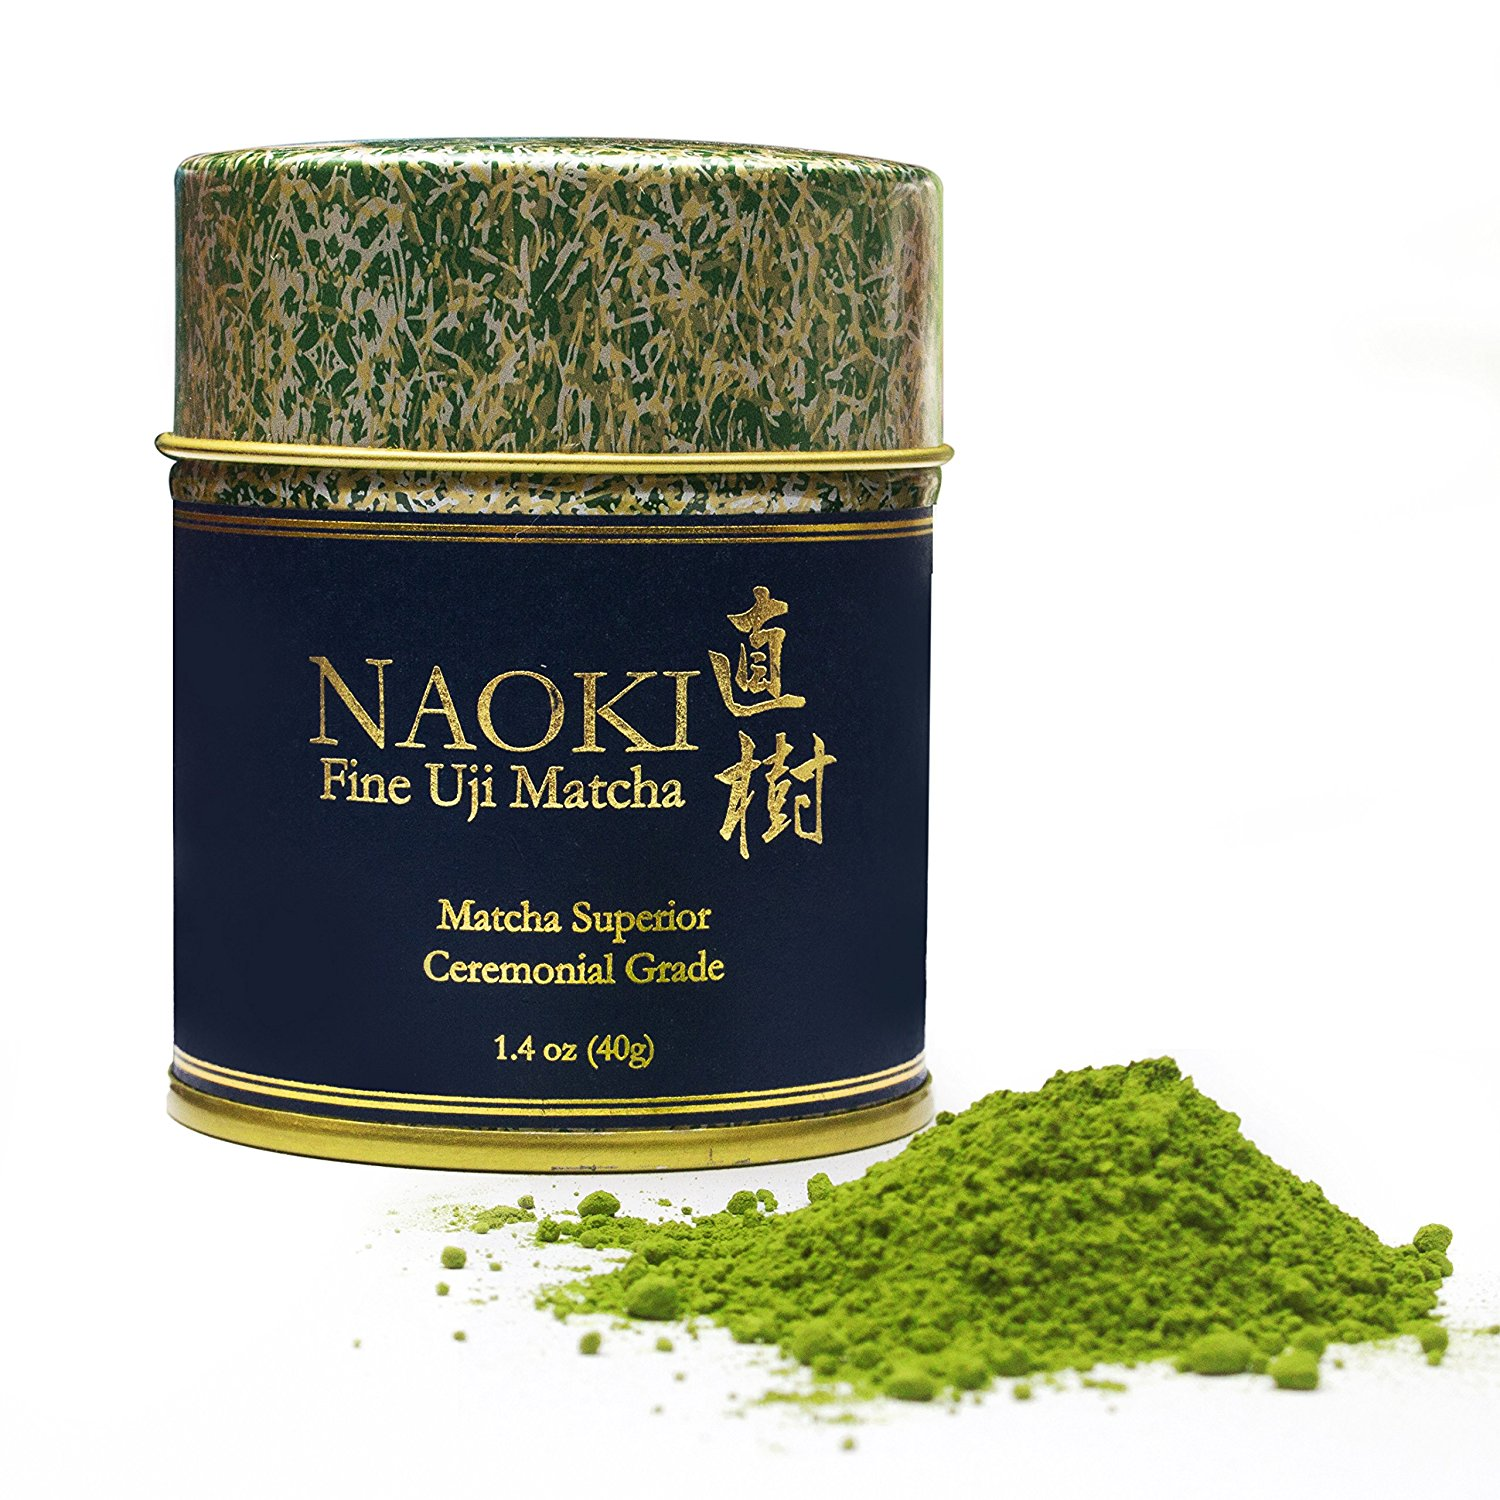 Authentic Naoki Matcha Green Tea Powder Superior Ceremonial Grade - Japanese 40g [1.4oz] - Experience The True Essence of Japanese Uji Matcha To Restore Focus